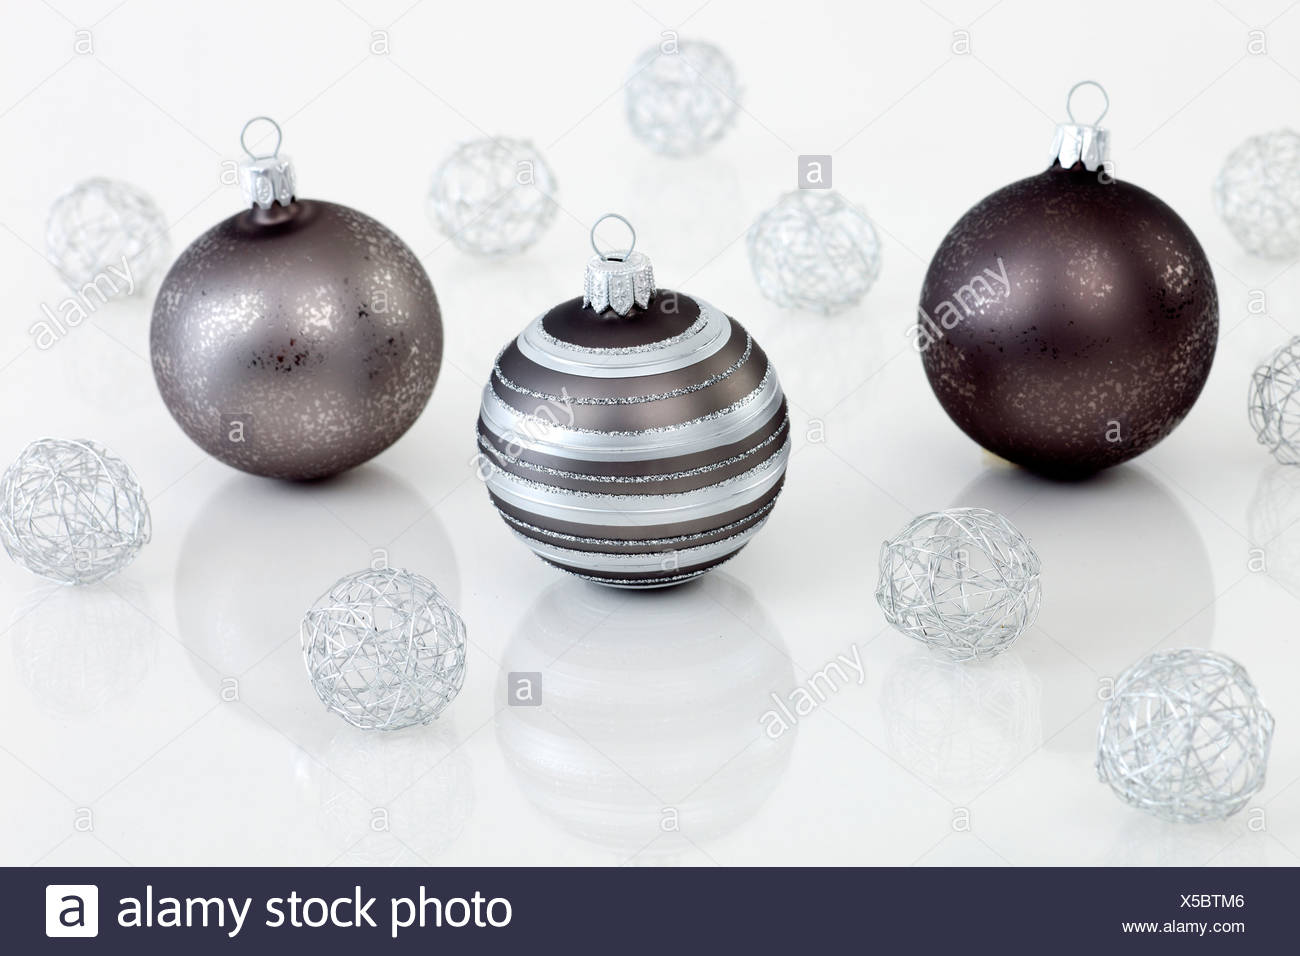 Wire Ball Stock Photos & Wire Ball Stock Images - Alamy